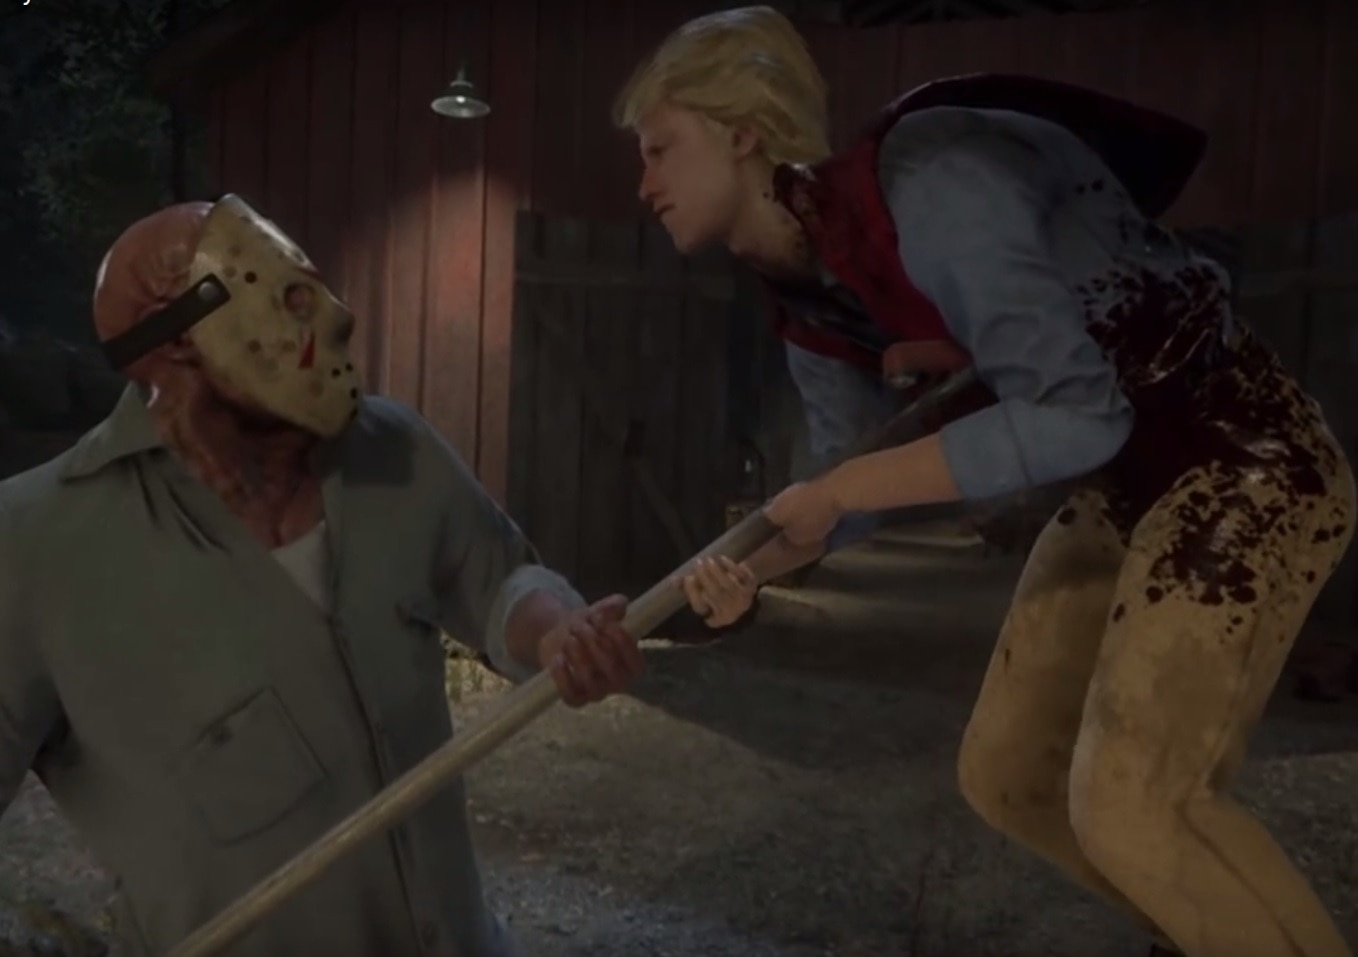 friday the 13th game - Friday the 13th: The Game Shows Off Brutal Kills in Coolest Video Ever